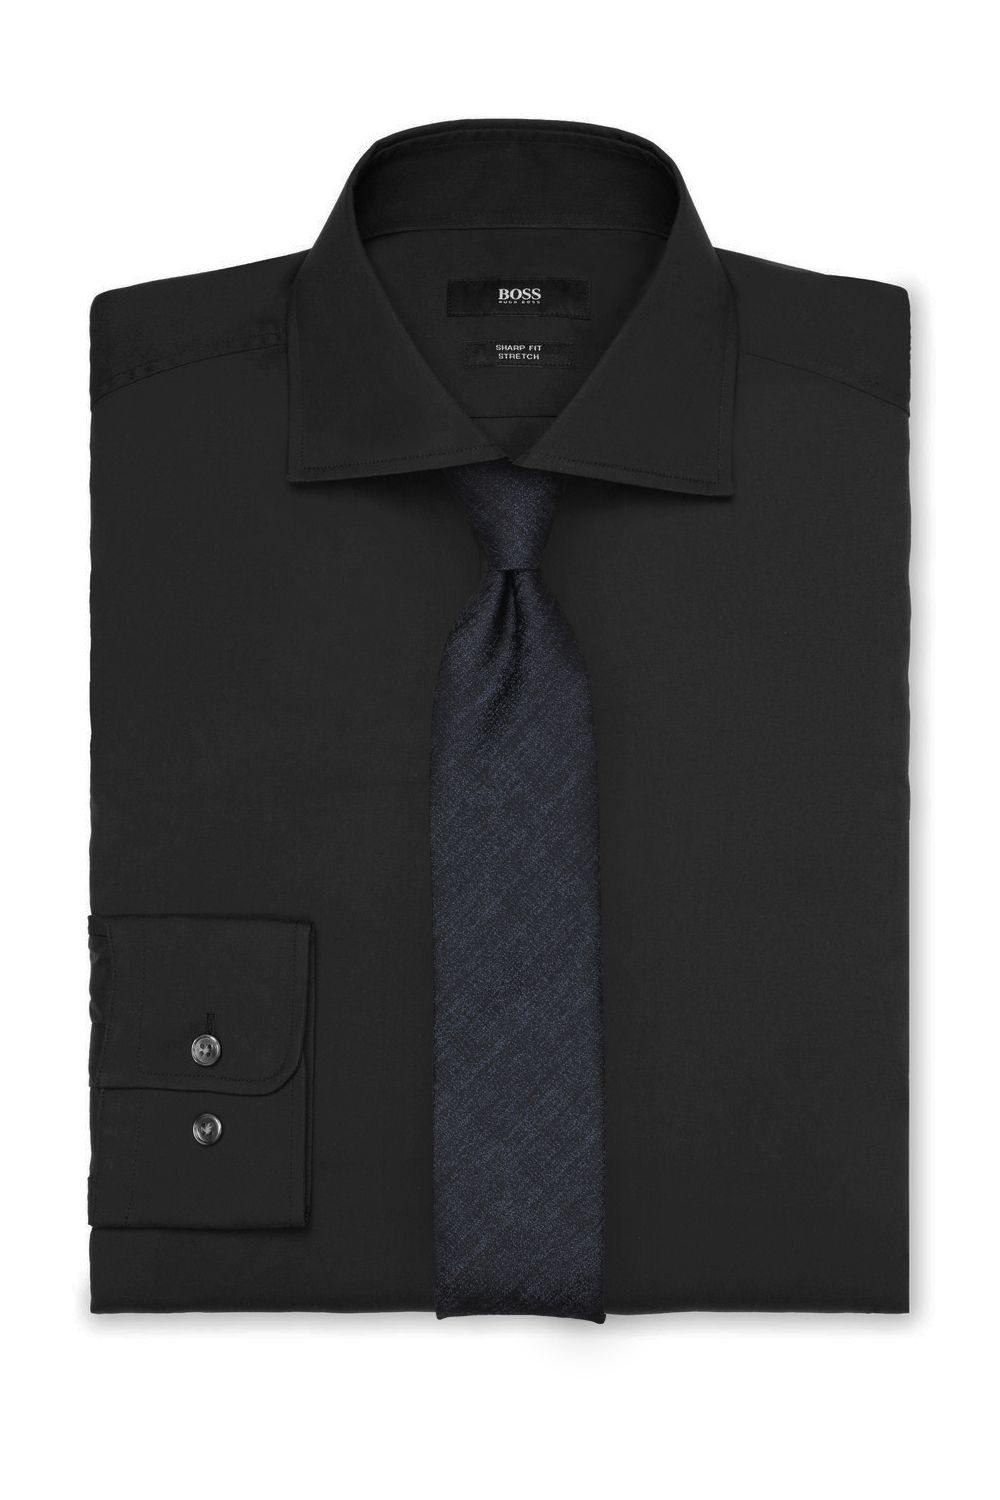 The Best Neckties To Pair With A Black Dress Shirt Black Shirt Dress Shirts Shirt Dress [ 1500 x 1000 Pixel ]